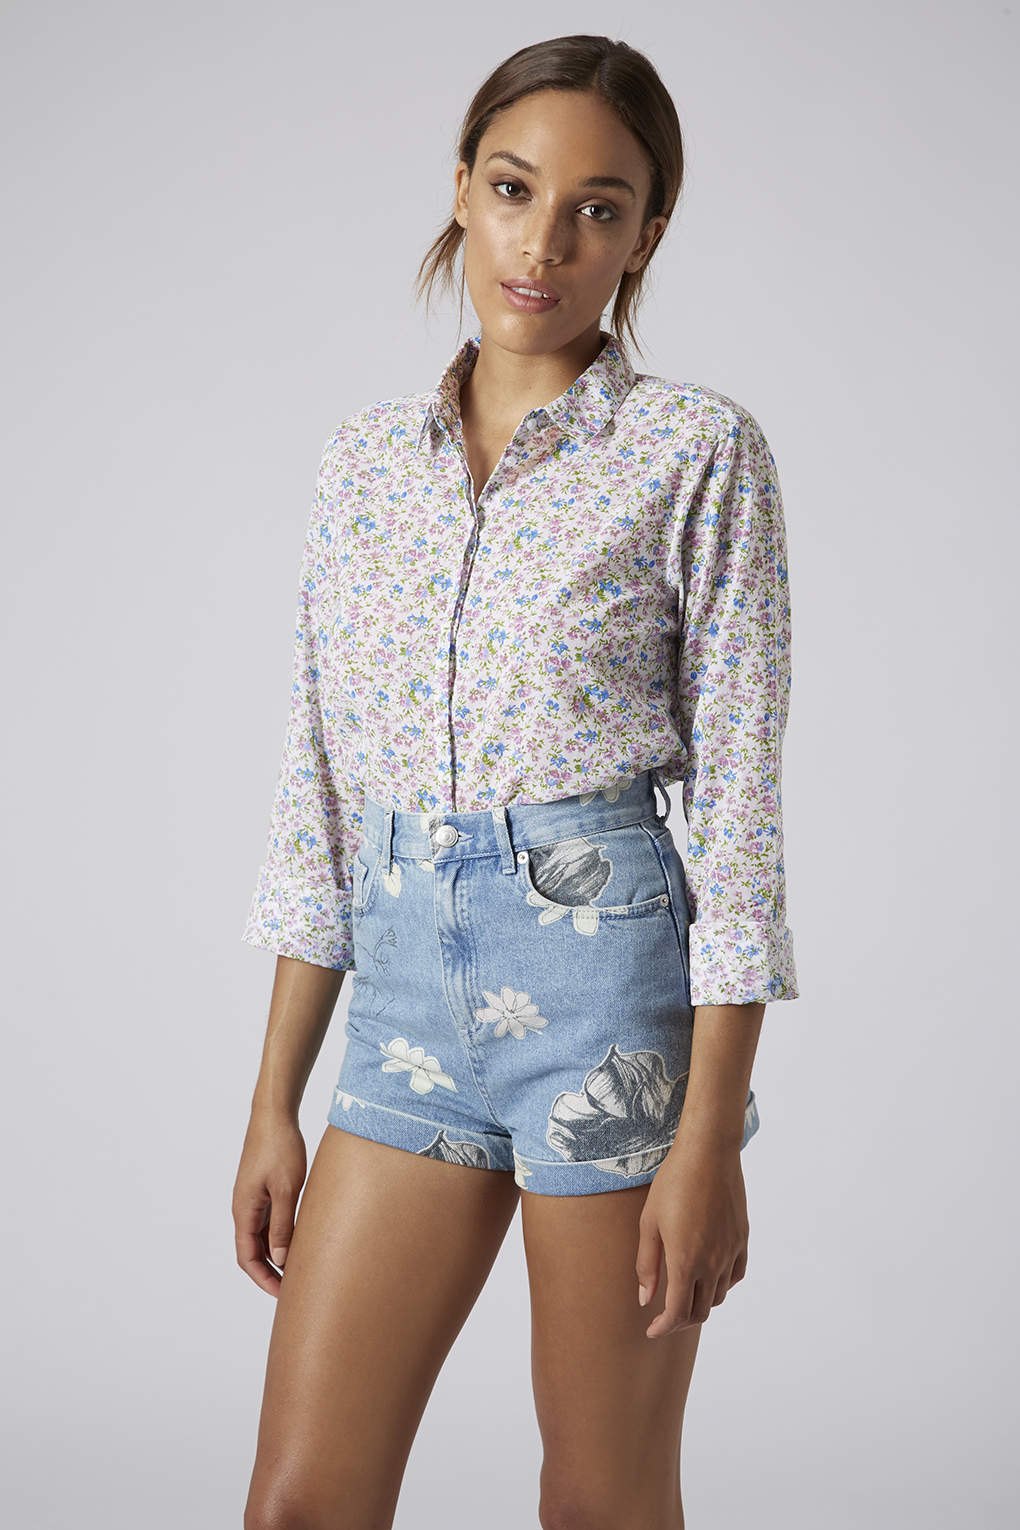 Cheap Sale Supply Great Deals Online Topshop Womens Ditsy Floral Print Shirt - Clearance Countdown Package Fast Delivery Cheap Price TvDsoppmCi